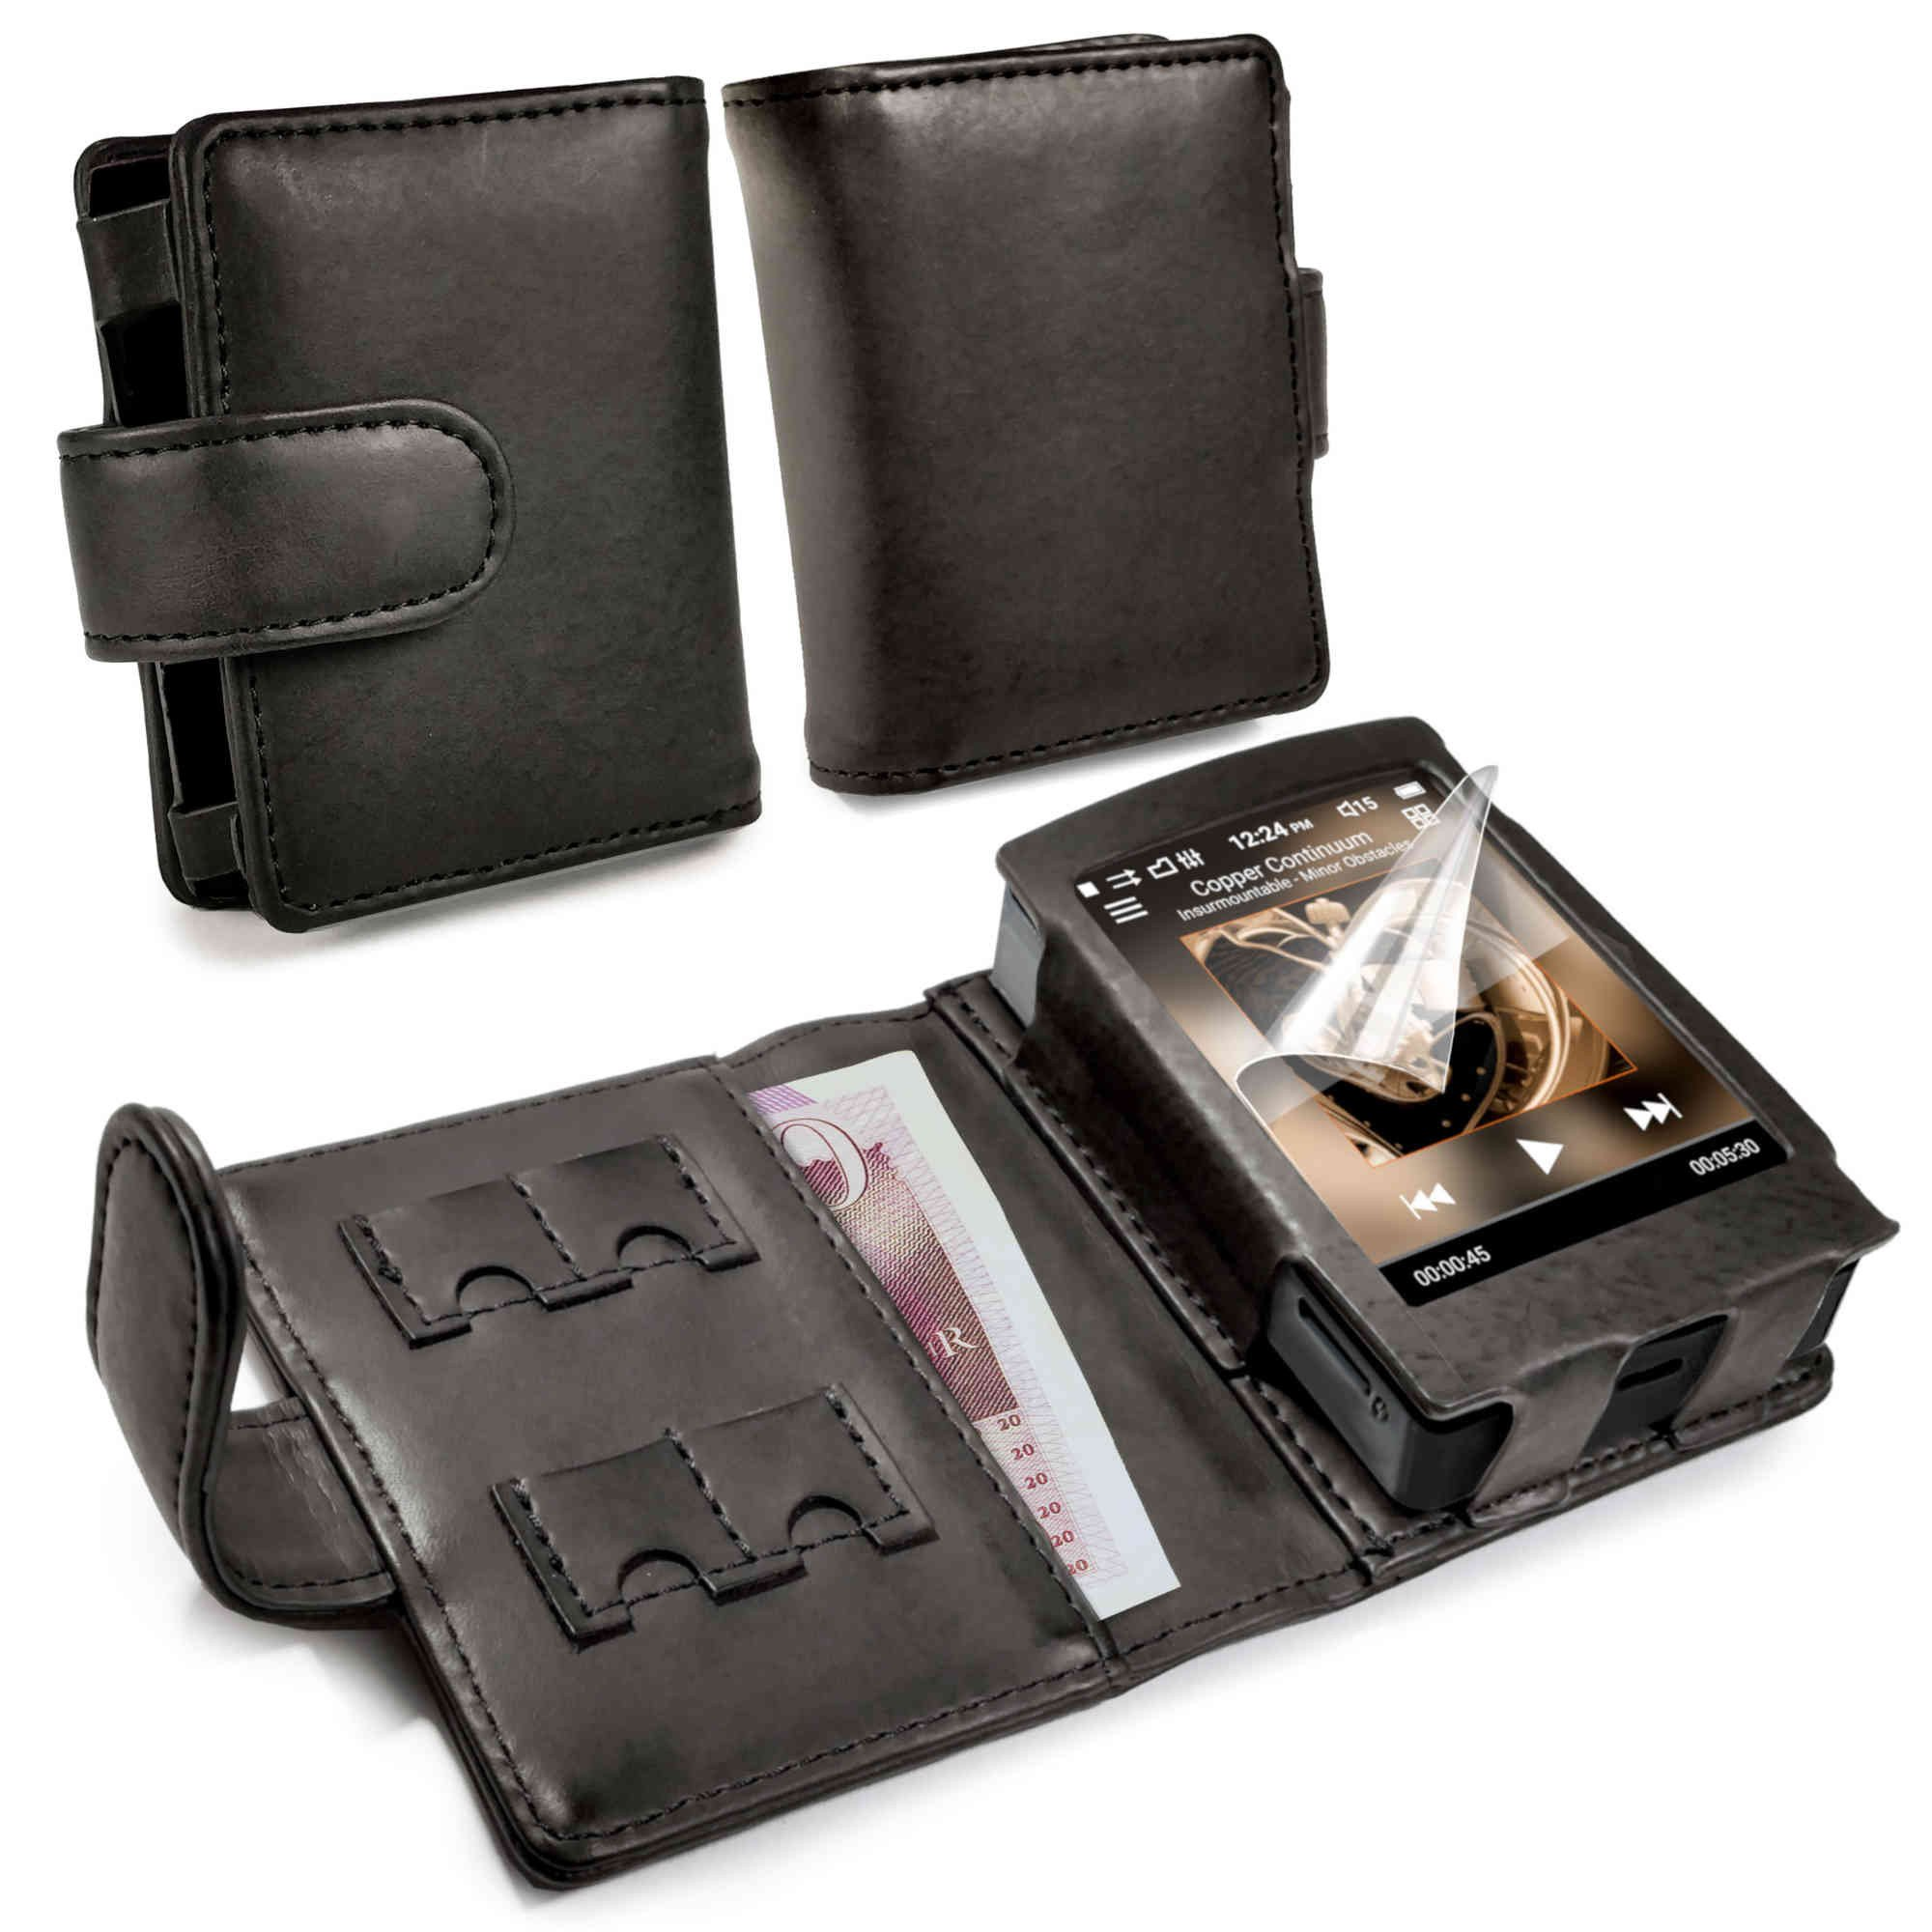 Tuff-luv Genuine Western Leather Case Cover for Cowon Plenue D - MP3 - Black by Tuff-luv (Image #1)